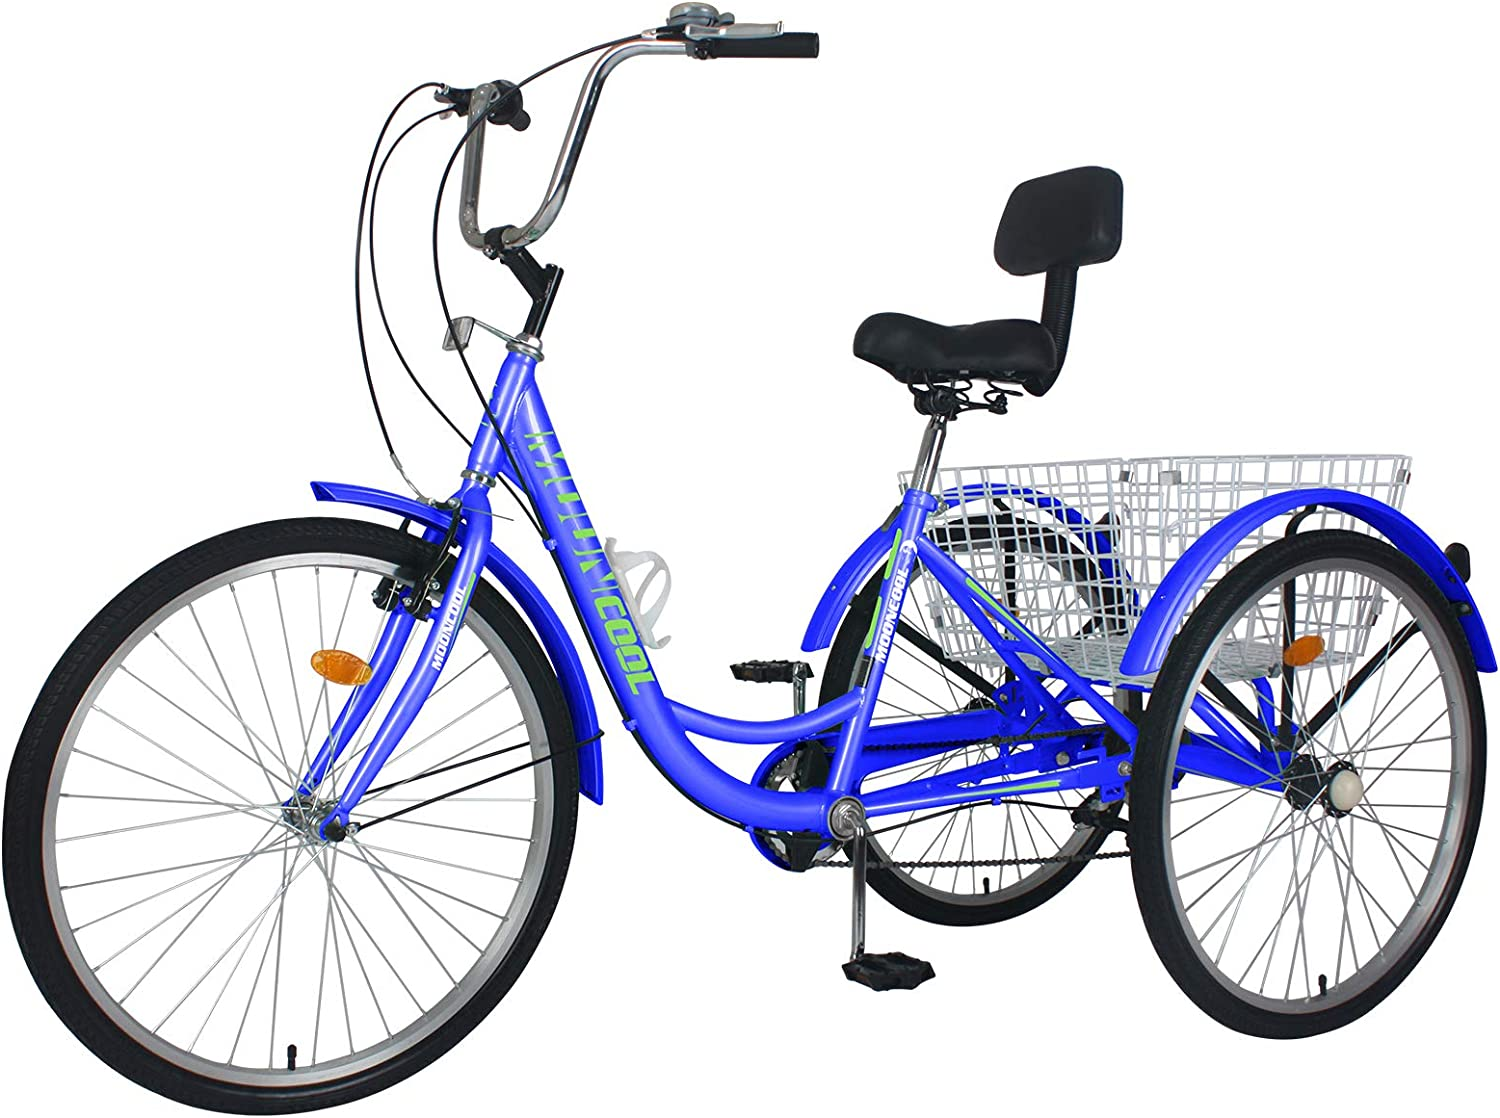 H/&ZT Adult Tricycle 7 Speed Three Wheel Bike Trike Cruise Bike with Large Basket for Recreation Shopping Exercise 24//26 inch Mens Womens Tricycle